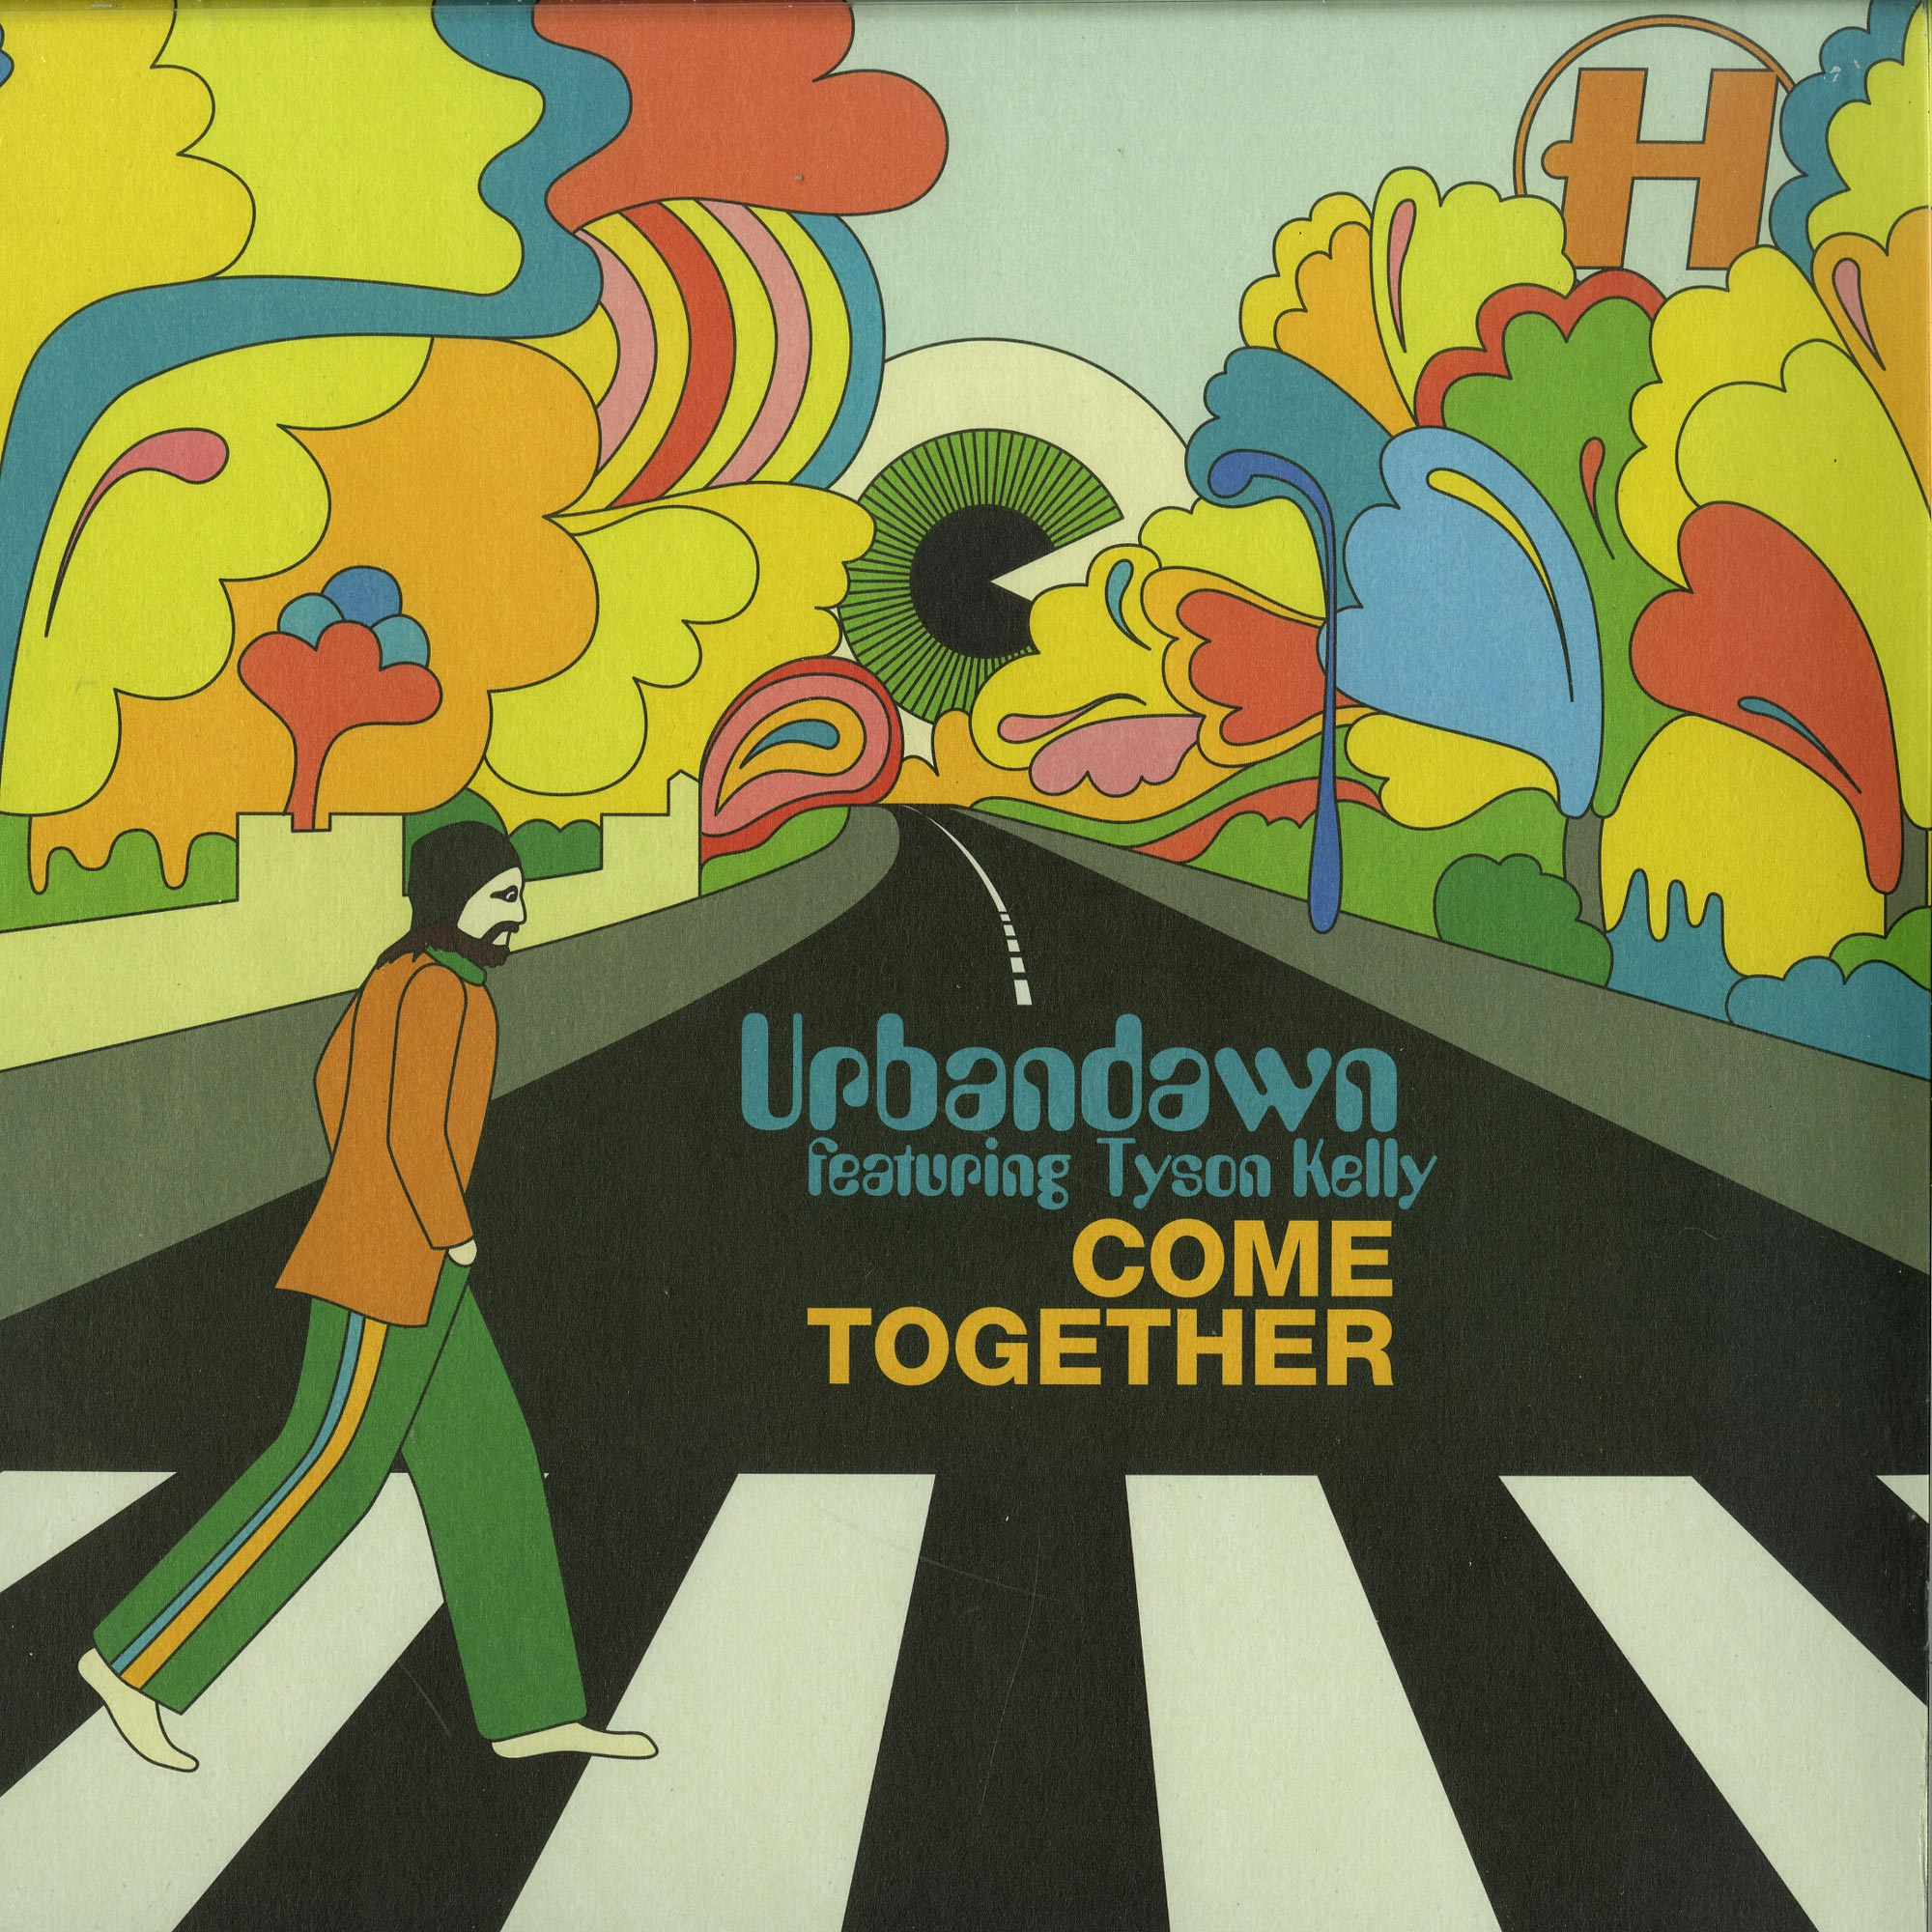 Urbandawn - COME TOGETHER